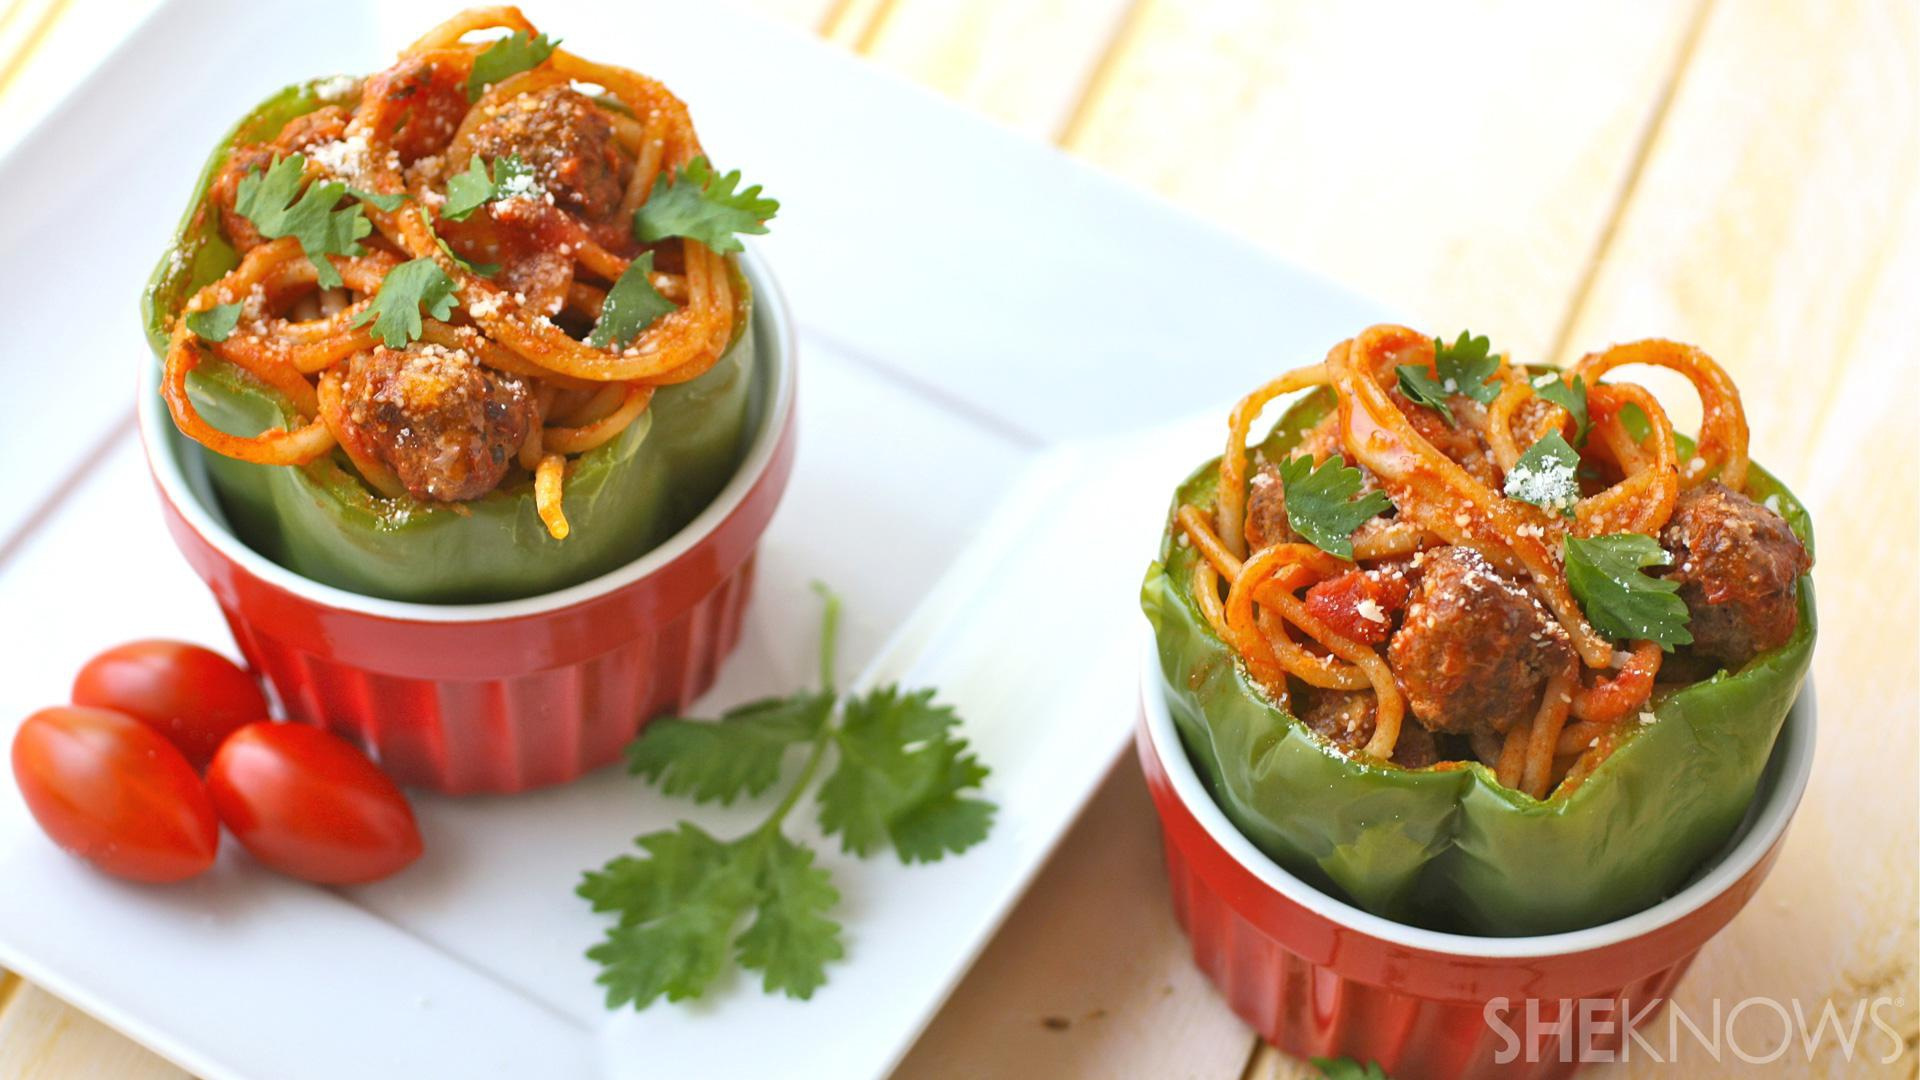 Comfort food mash-up: Gluten-free spaghetti-and-meatball-stuffed peppers